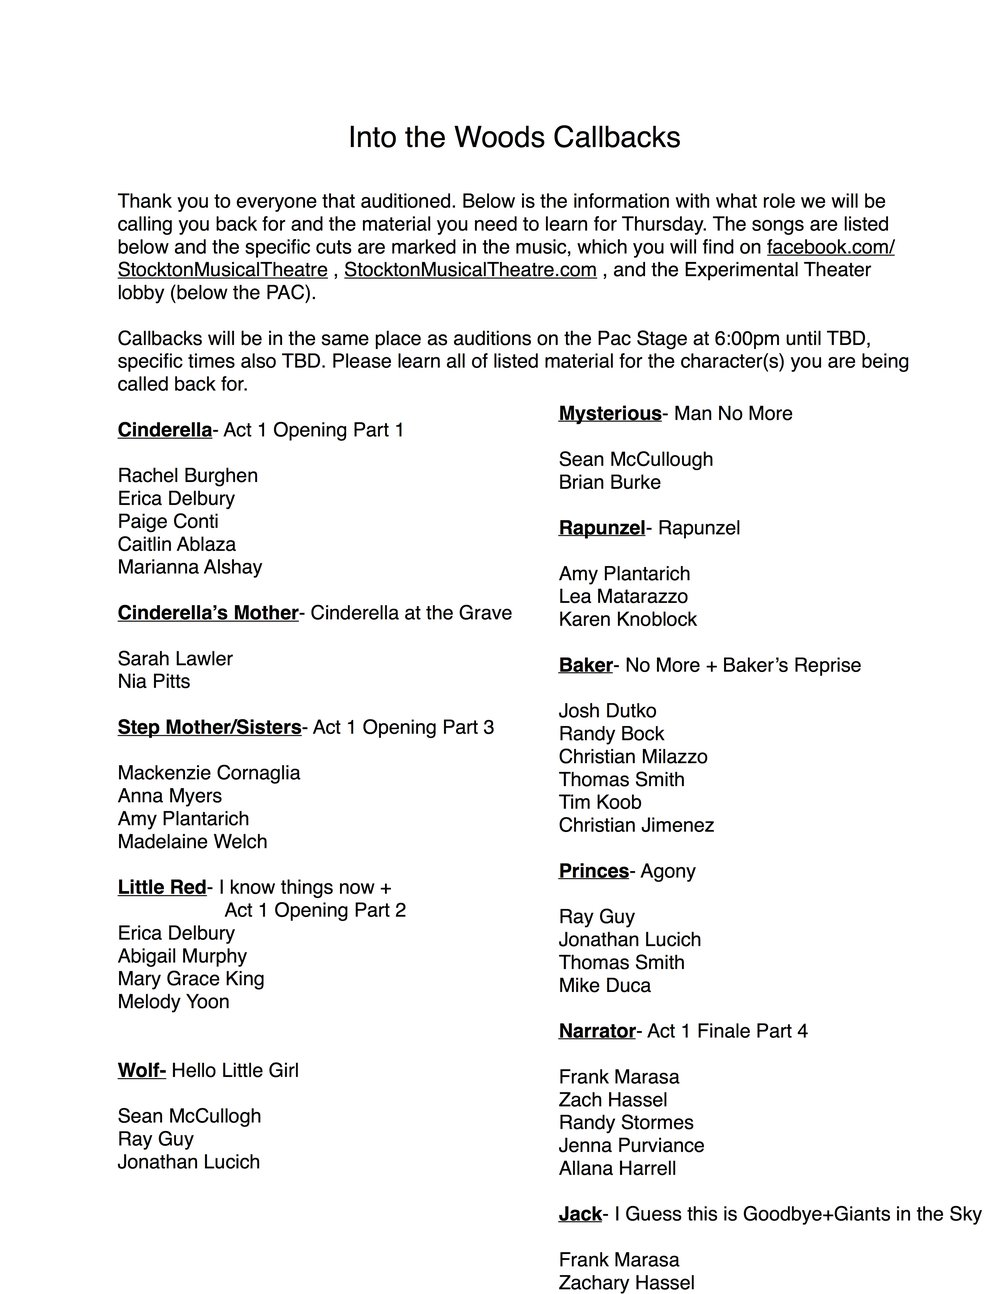 Into the Woods Callbacks names and roles copy.jpg